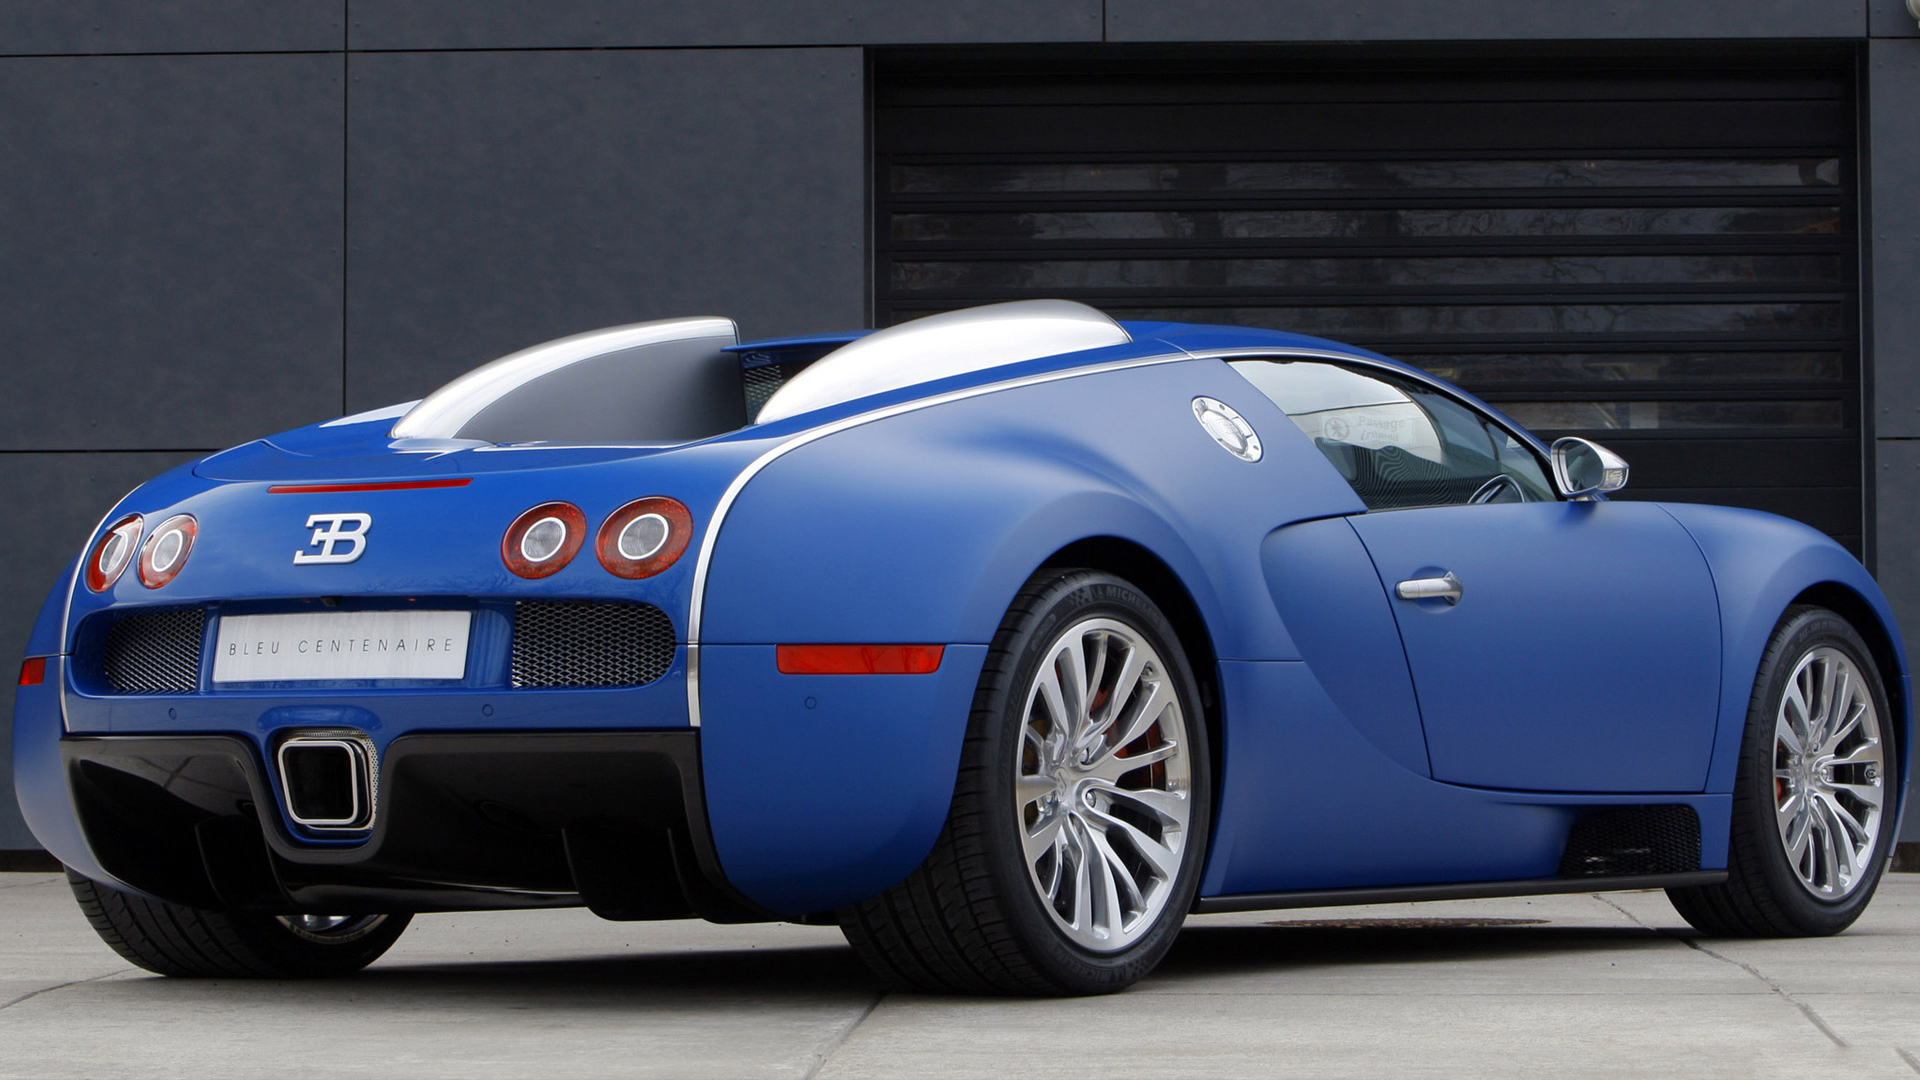 car-wallpaper-0126 Stunning Bugatti Veyron Price In Brazil Cars Trend